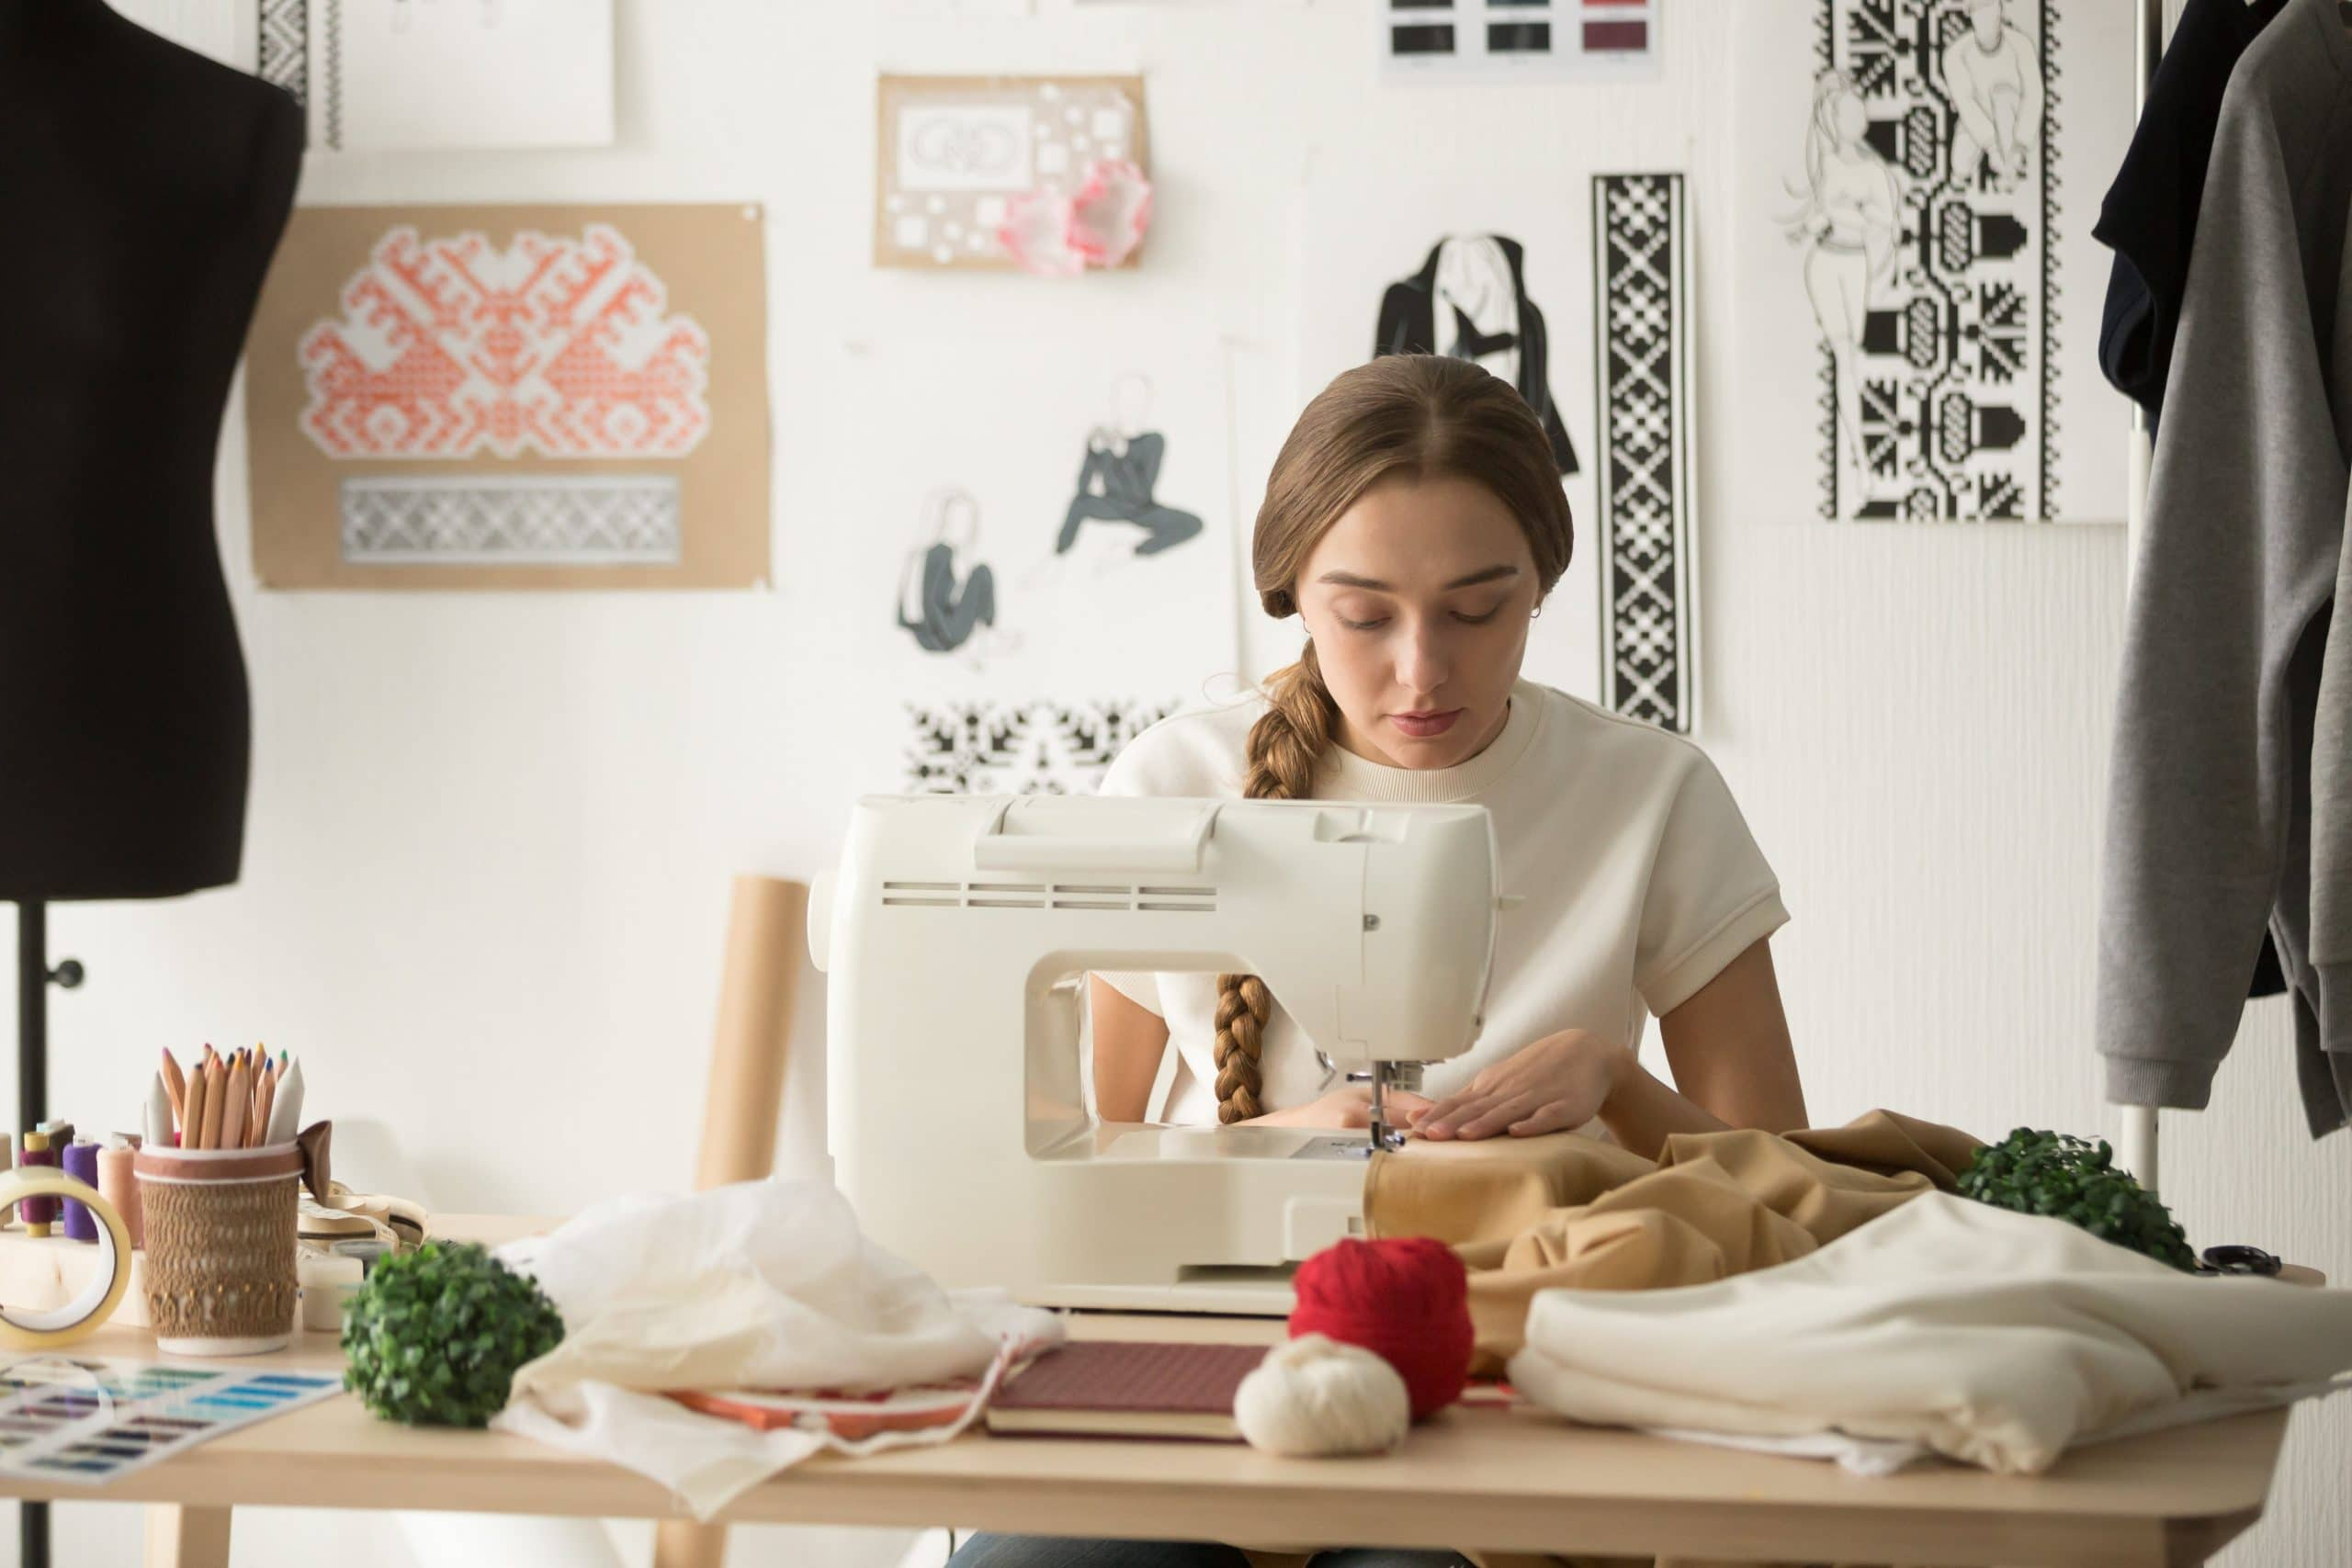 5 Best Janome Sewing Machines - A Janome Buyers Guide!